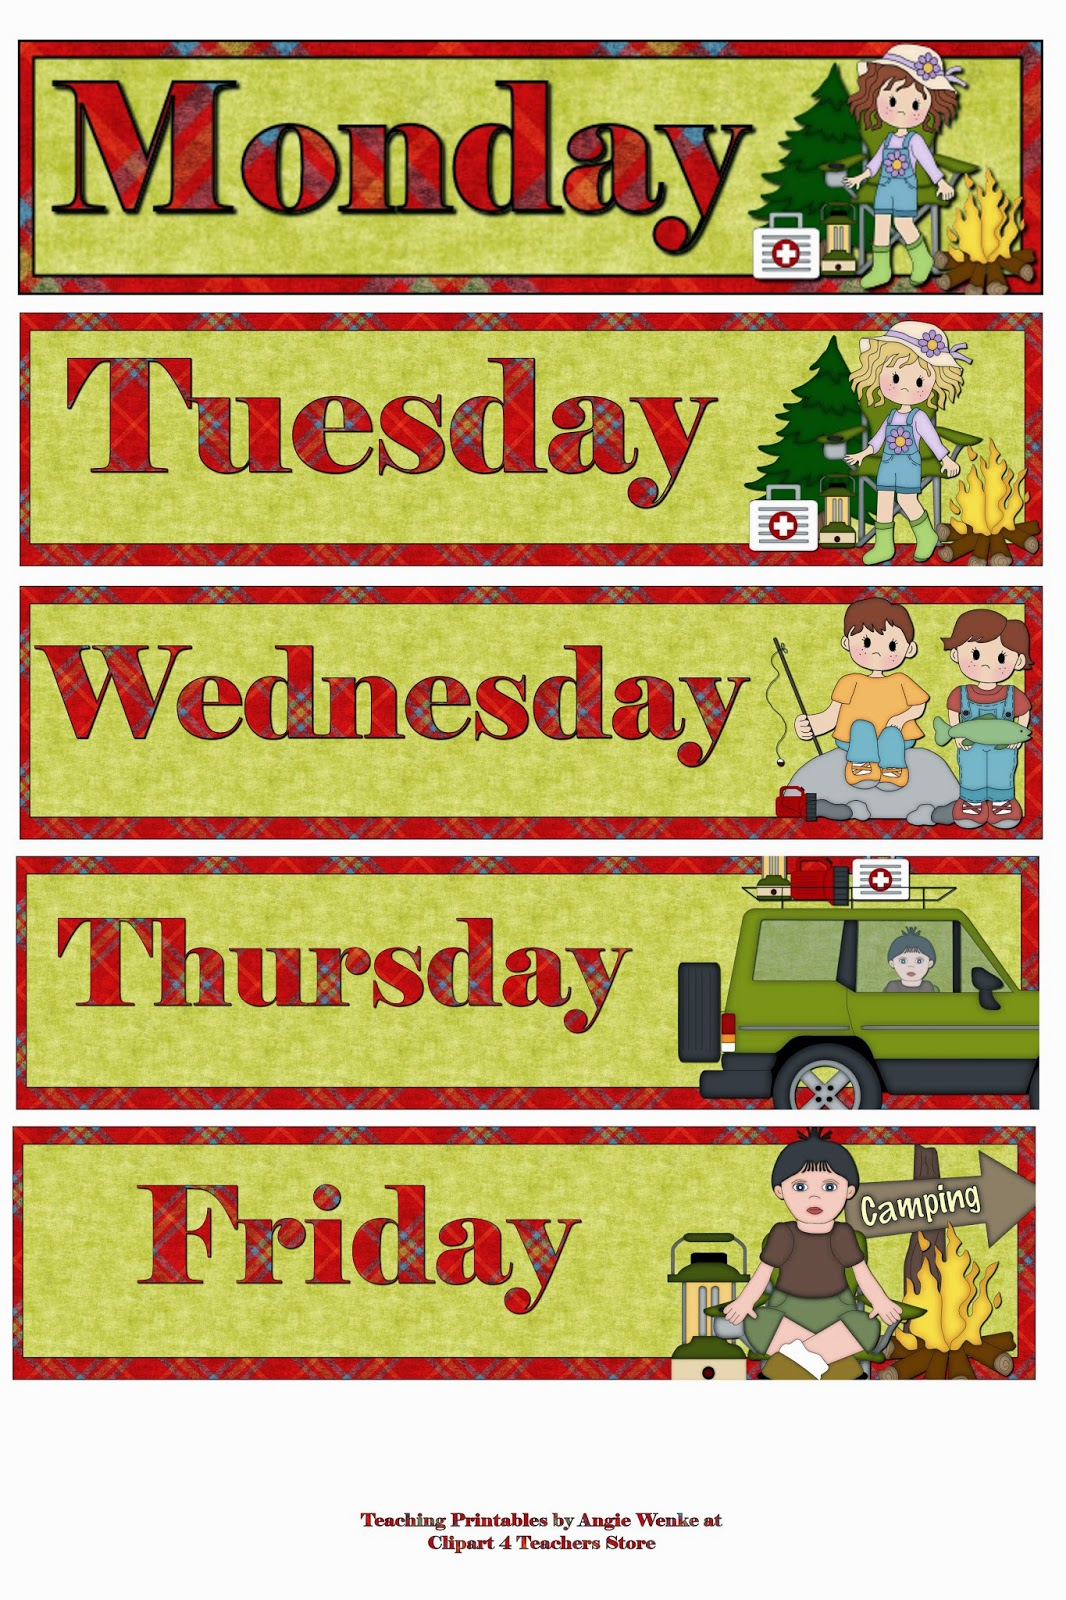 Resale Clipart: FREE Days of the Week for Teachers